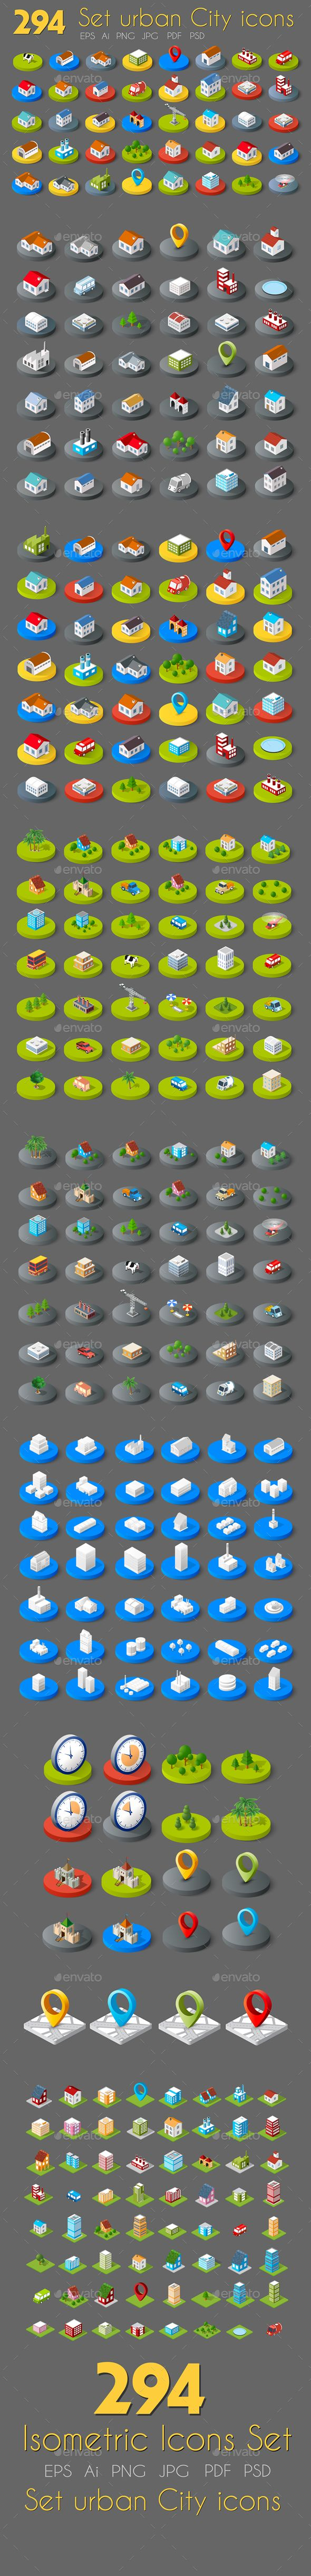 Isometric Web Icons Design Template - Buildings Objects Vector Design Template PSD, Vector EPS, AI Illustrator, Transparent PNG, JPG Image. Download here: https://graphicriver.net/item/isometric-web-icons/19363449?ref=yinkira